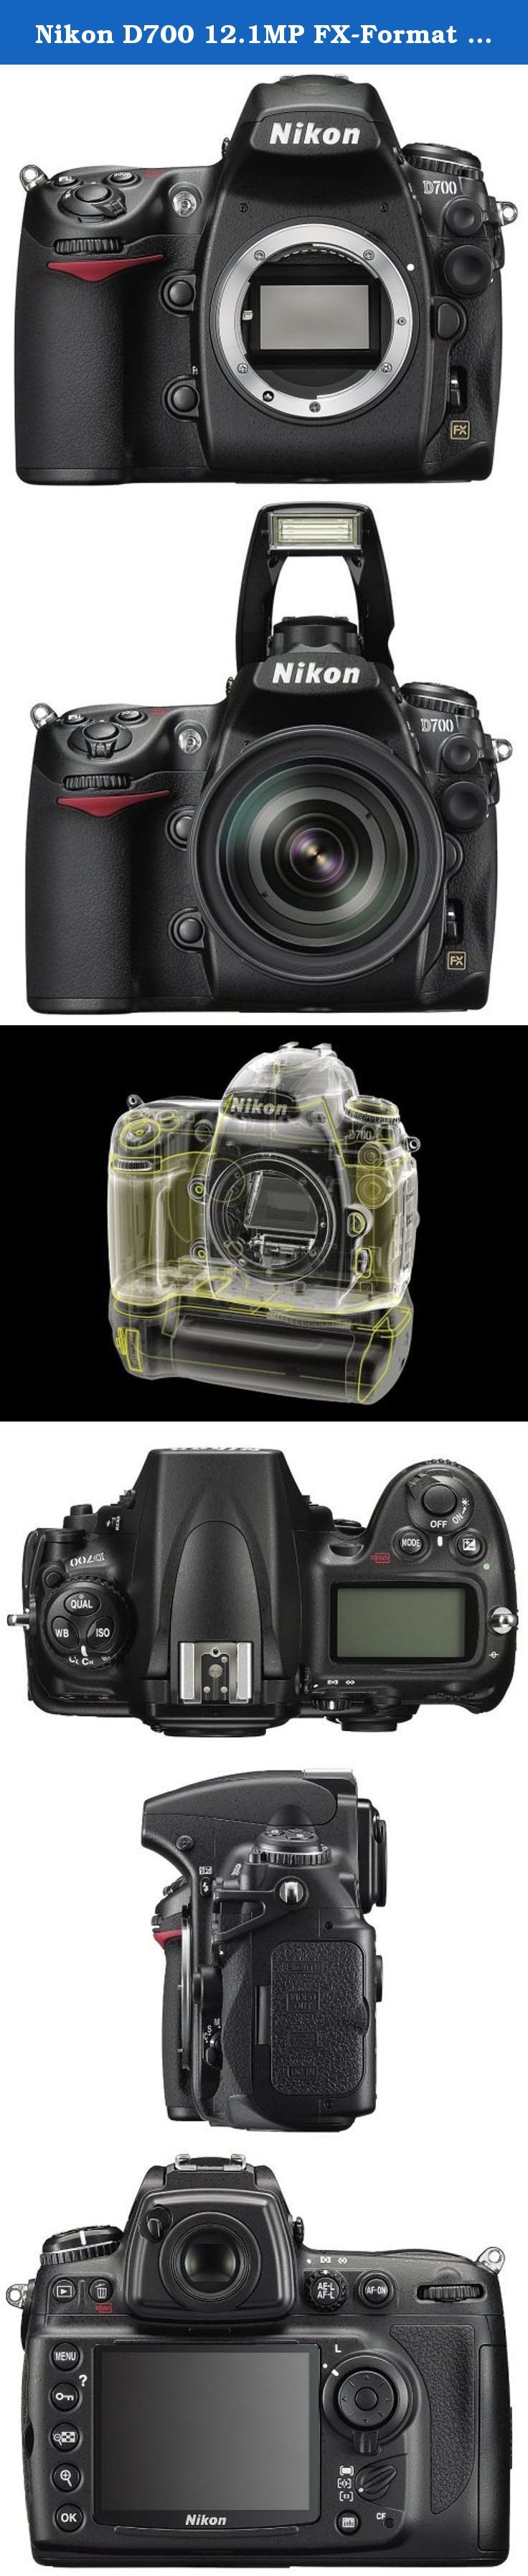 Nikon D700 12.1MP FX-Format CMOS Digital SLR Camera with 3.0-Inch LCD (Body Only) - International Version (No Warranty). The Nikon D700 SLR Digital Camera (Body Only) brings professional imaging with a full-frame image sensor to a lightweight yet durable camera body. It features the exclusive 12.1 Megapixel FX-format CMOS sensor, measuring 23.9 x 36mm, which is nearly identical to the size of a 35mm film frame - thereby eliminating any significant crop factor or focal length multiplier....